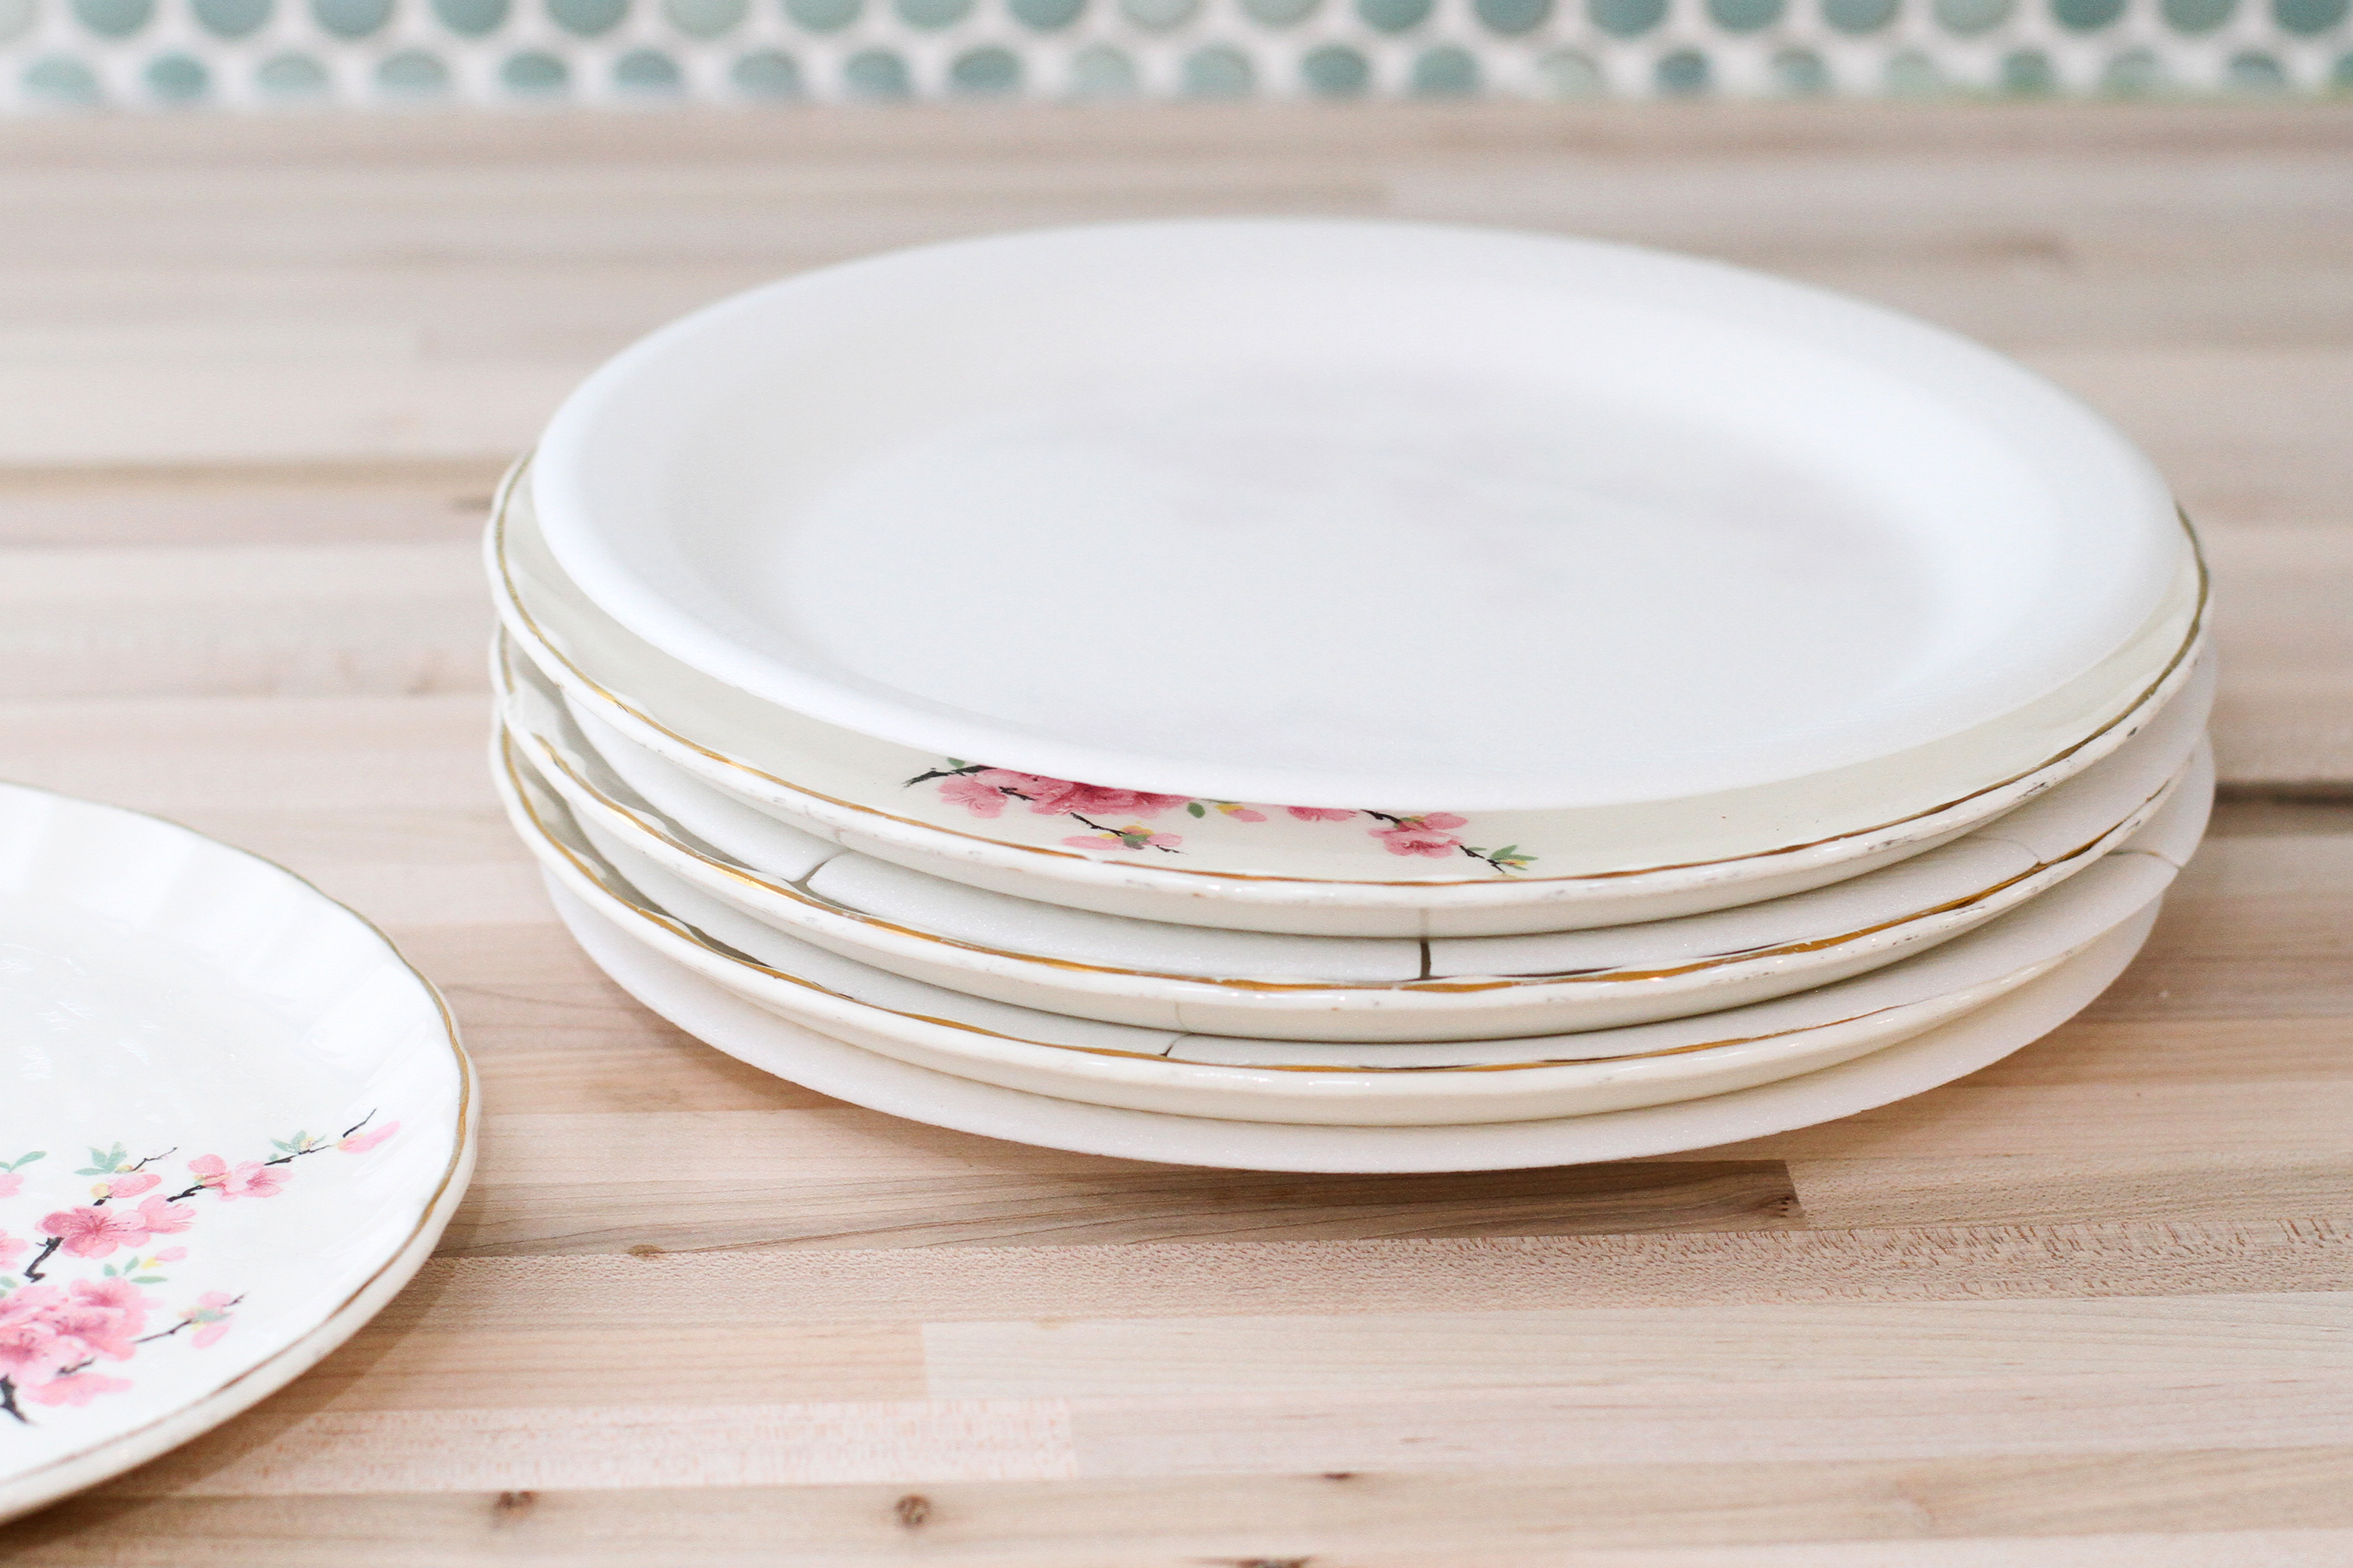 Storage Tips For Bulky Items Cookware Serving Pieces Cutting Boards Kitchn